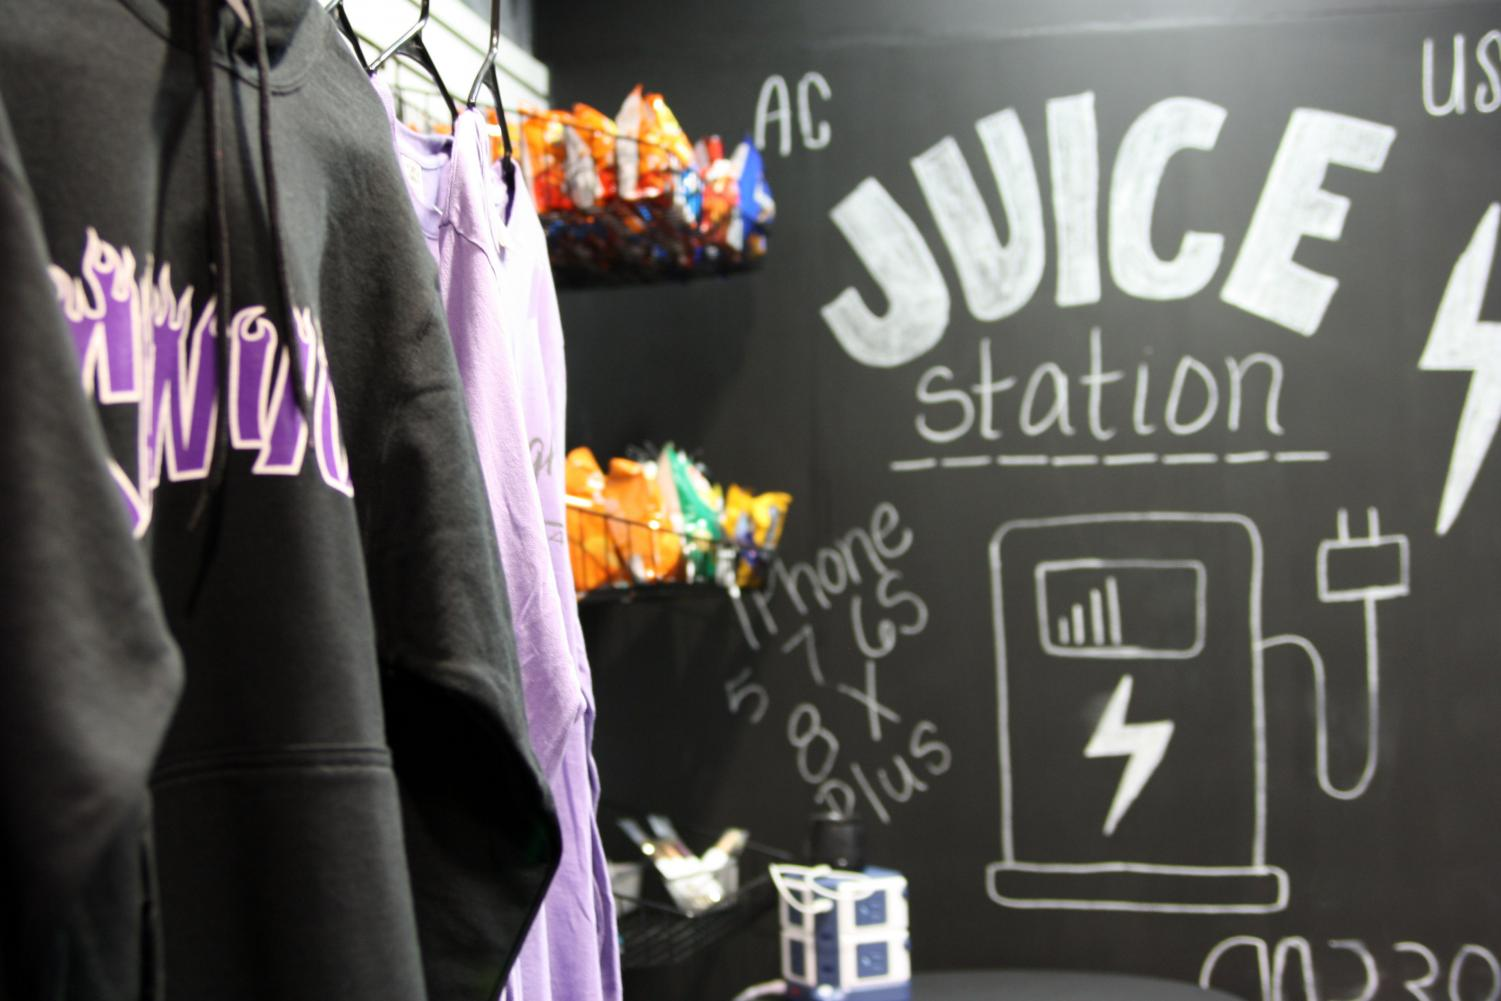 The Juice Station is only a small part of what the school store has to offer.